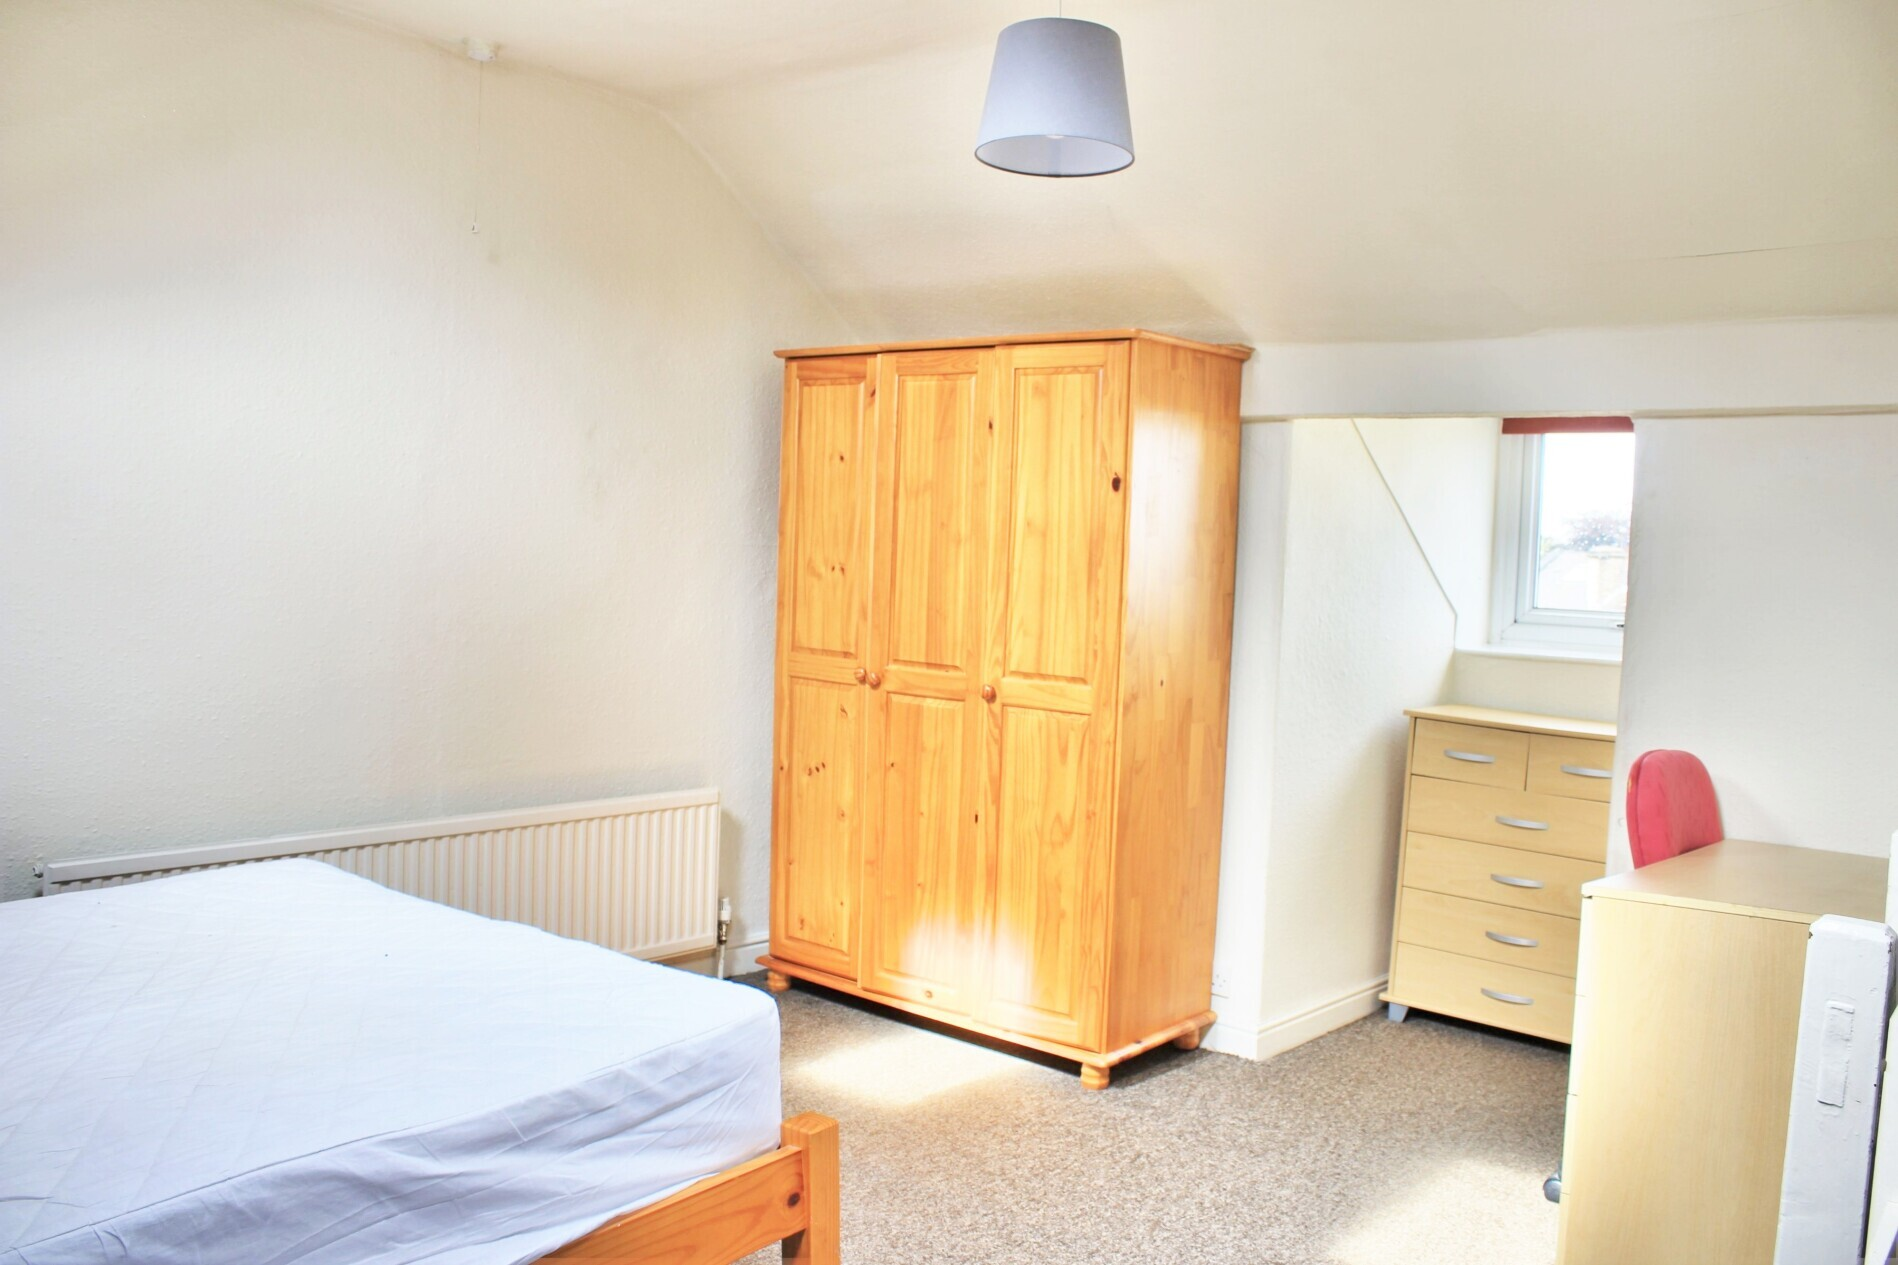 2 bedroom student house in Broomhill, Sheffield